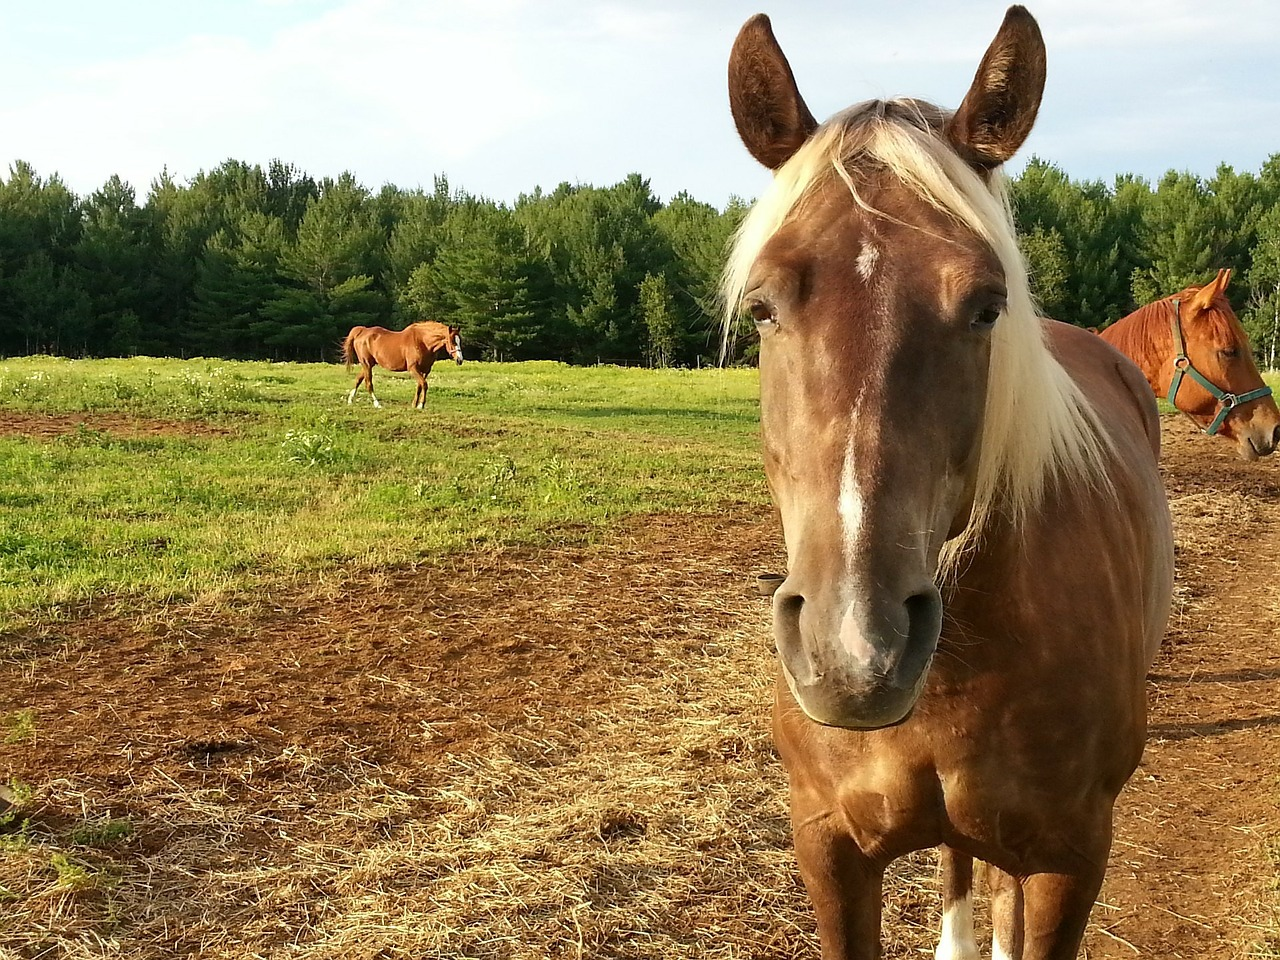 Horseback riding vacations are thrilling